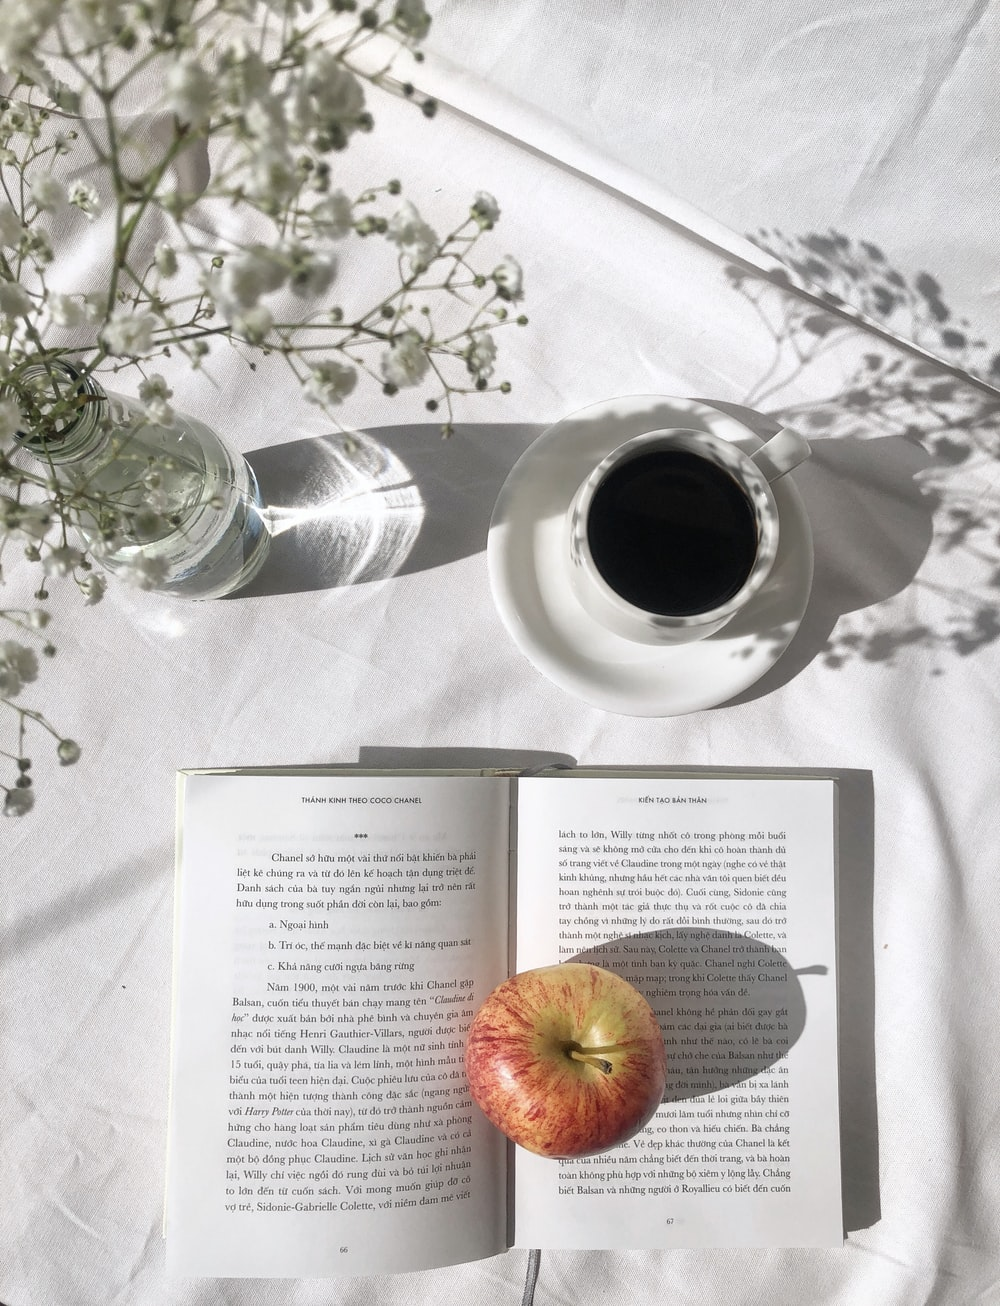 apple fruit on top of open book beside black coffee in white ceramic cup on table